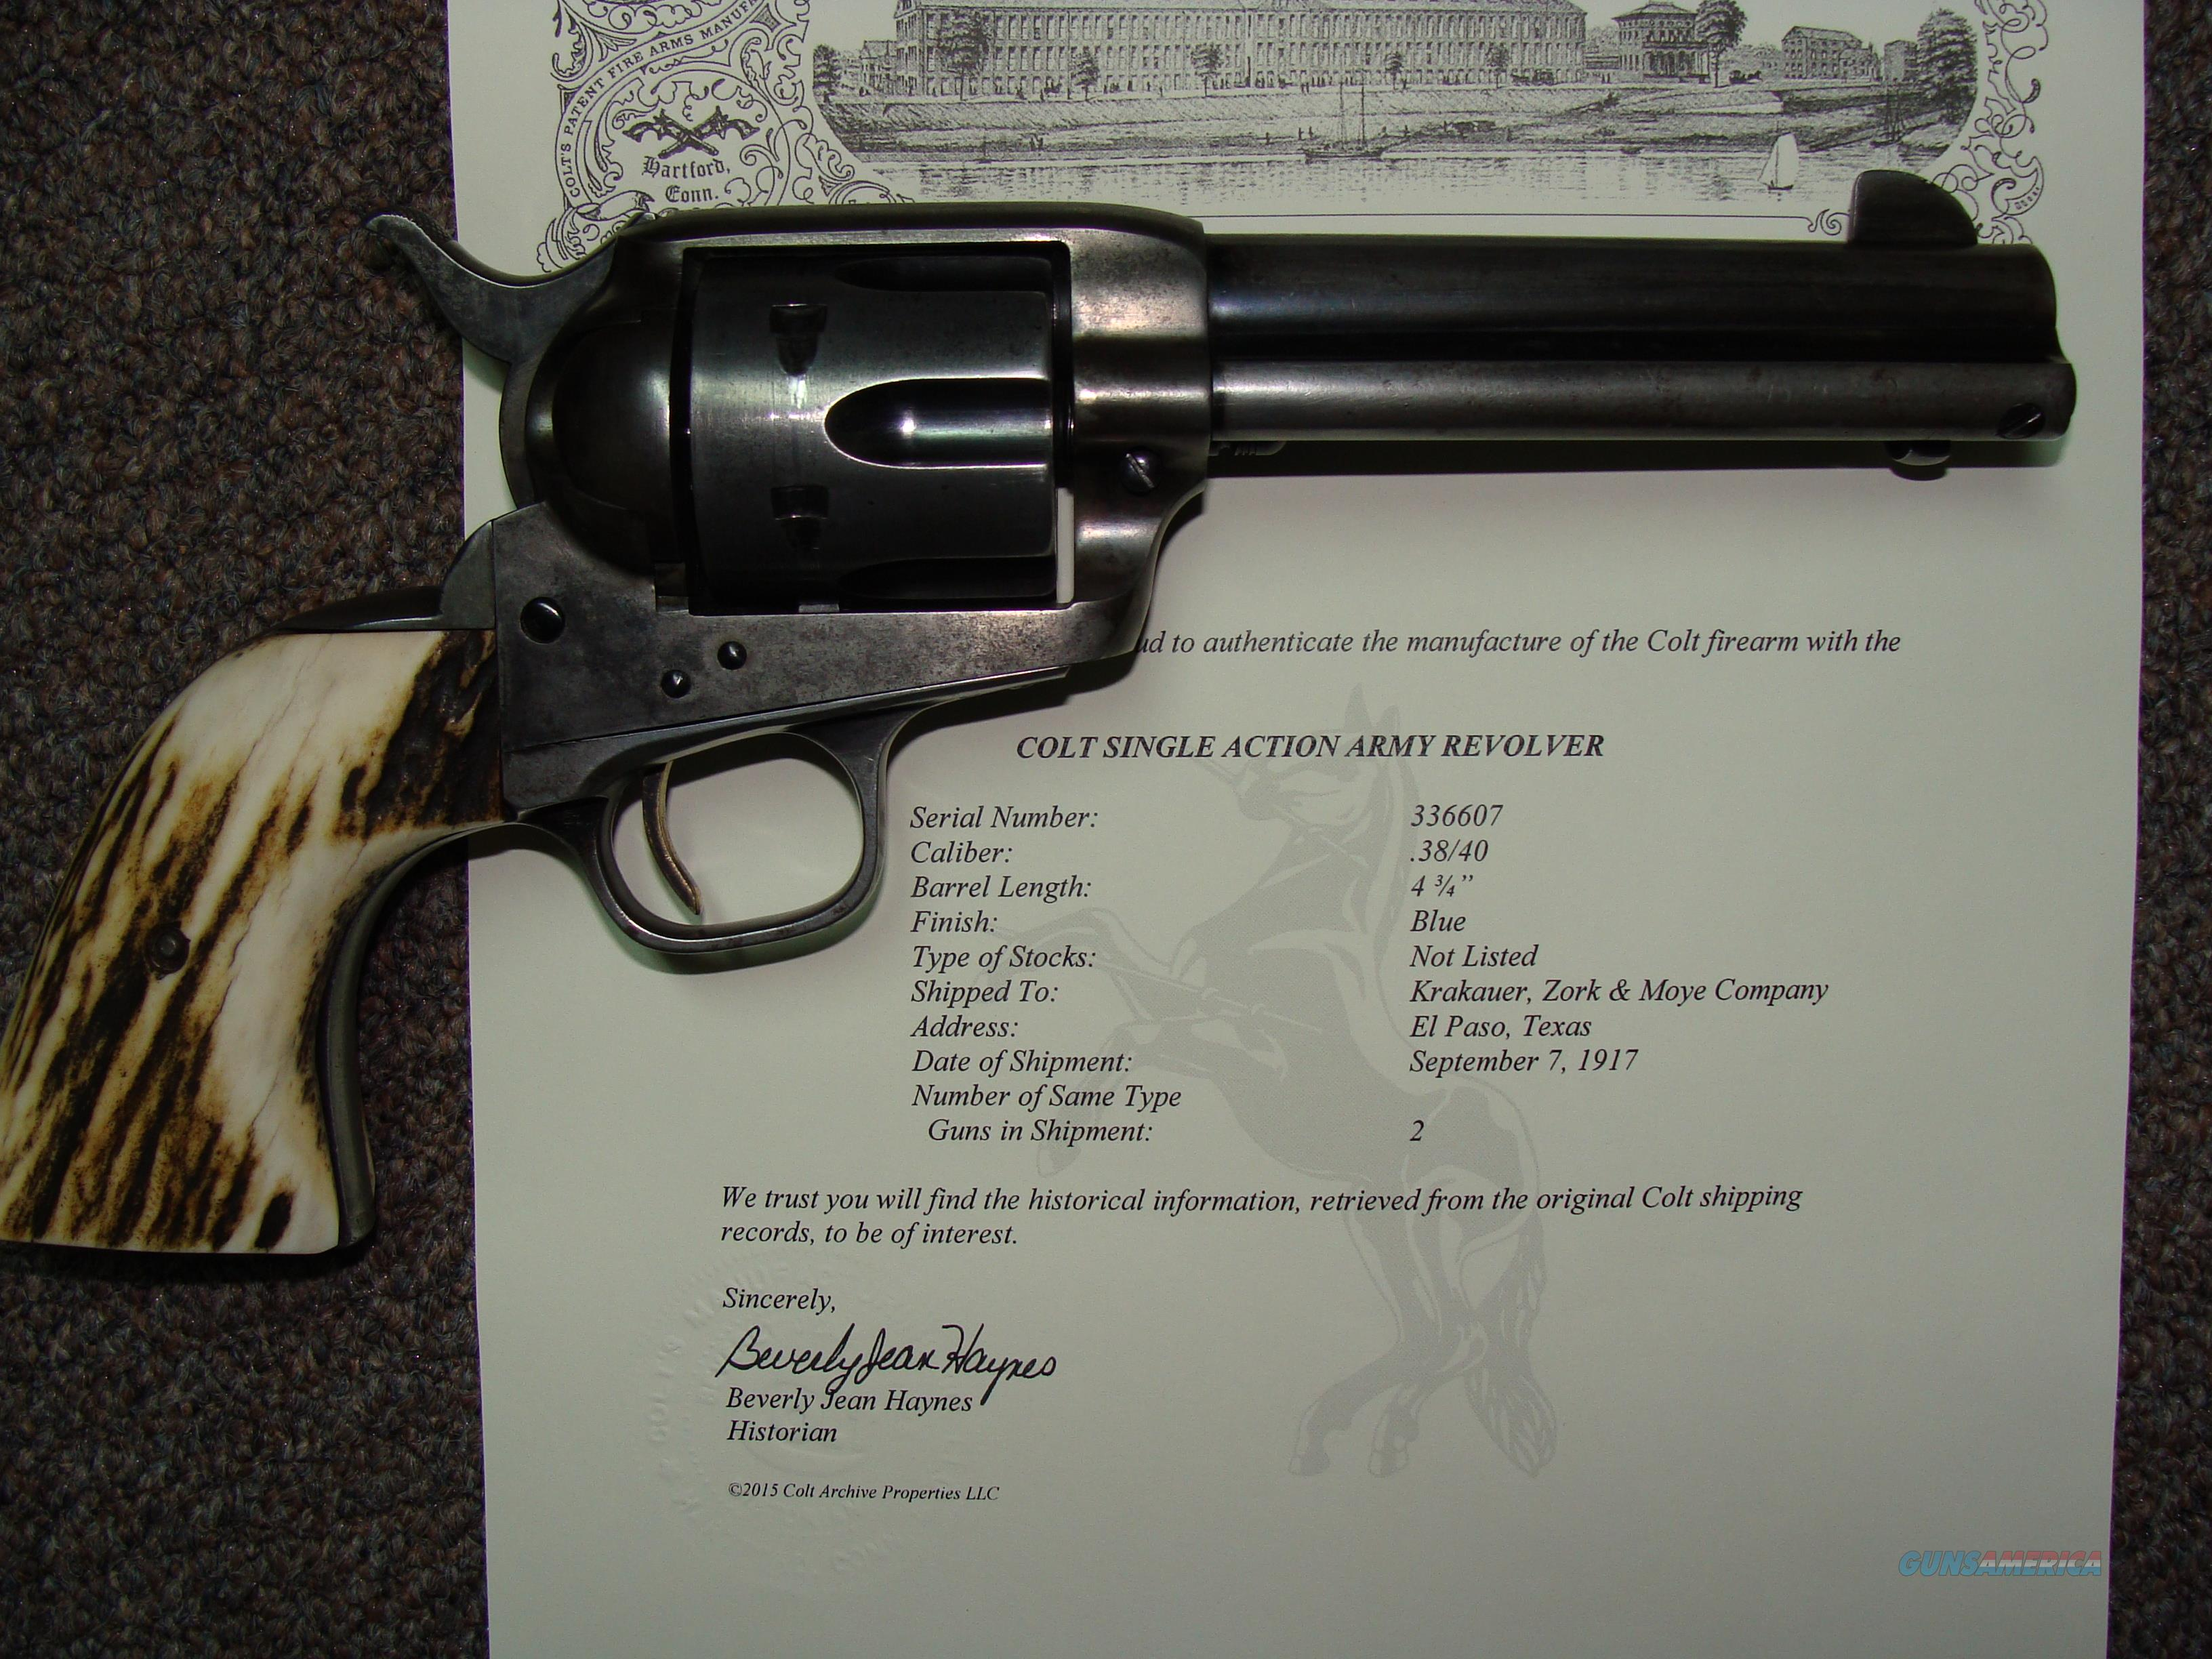 colt saa 4 3/4 inch 38-40  Guns > Pistols > Colt Single Action Revolvers - 1st Gen.